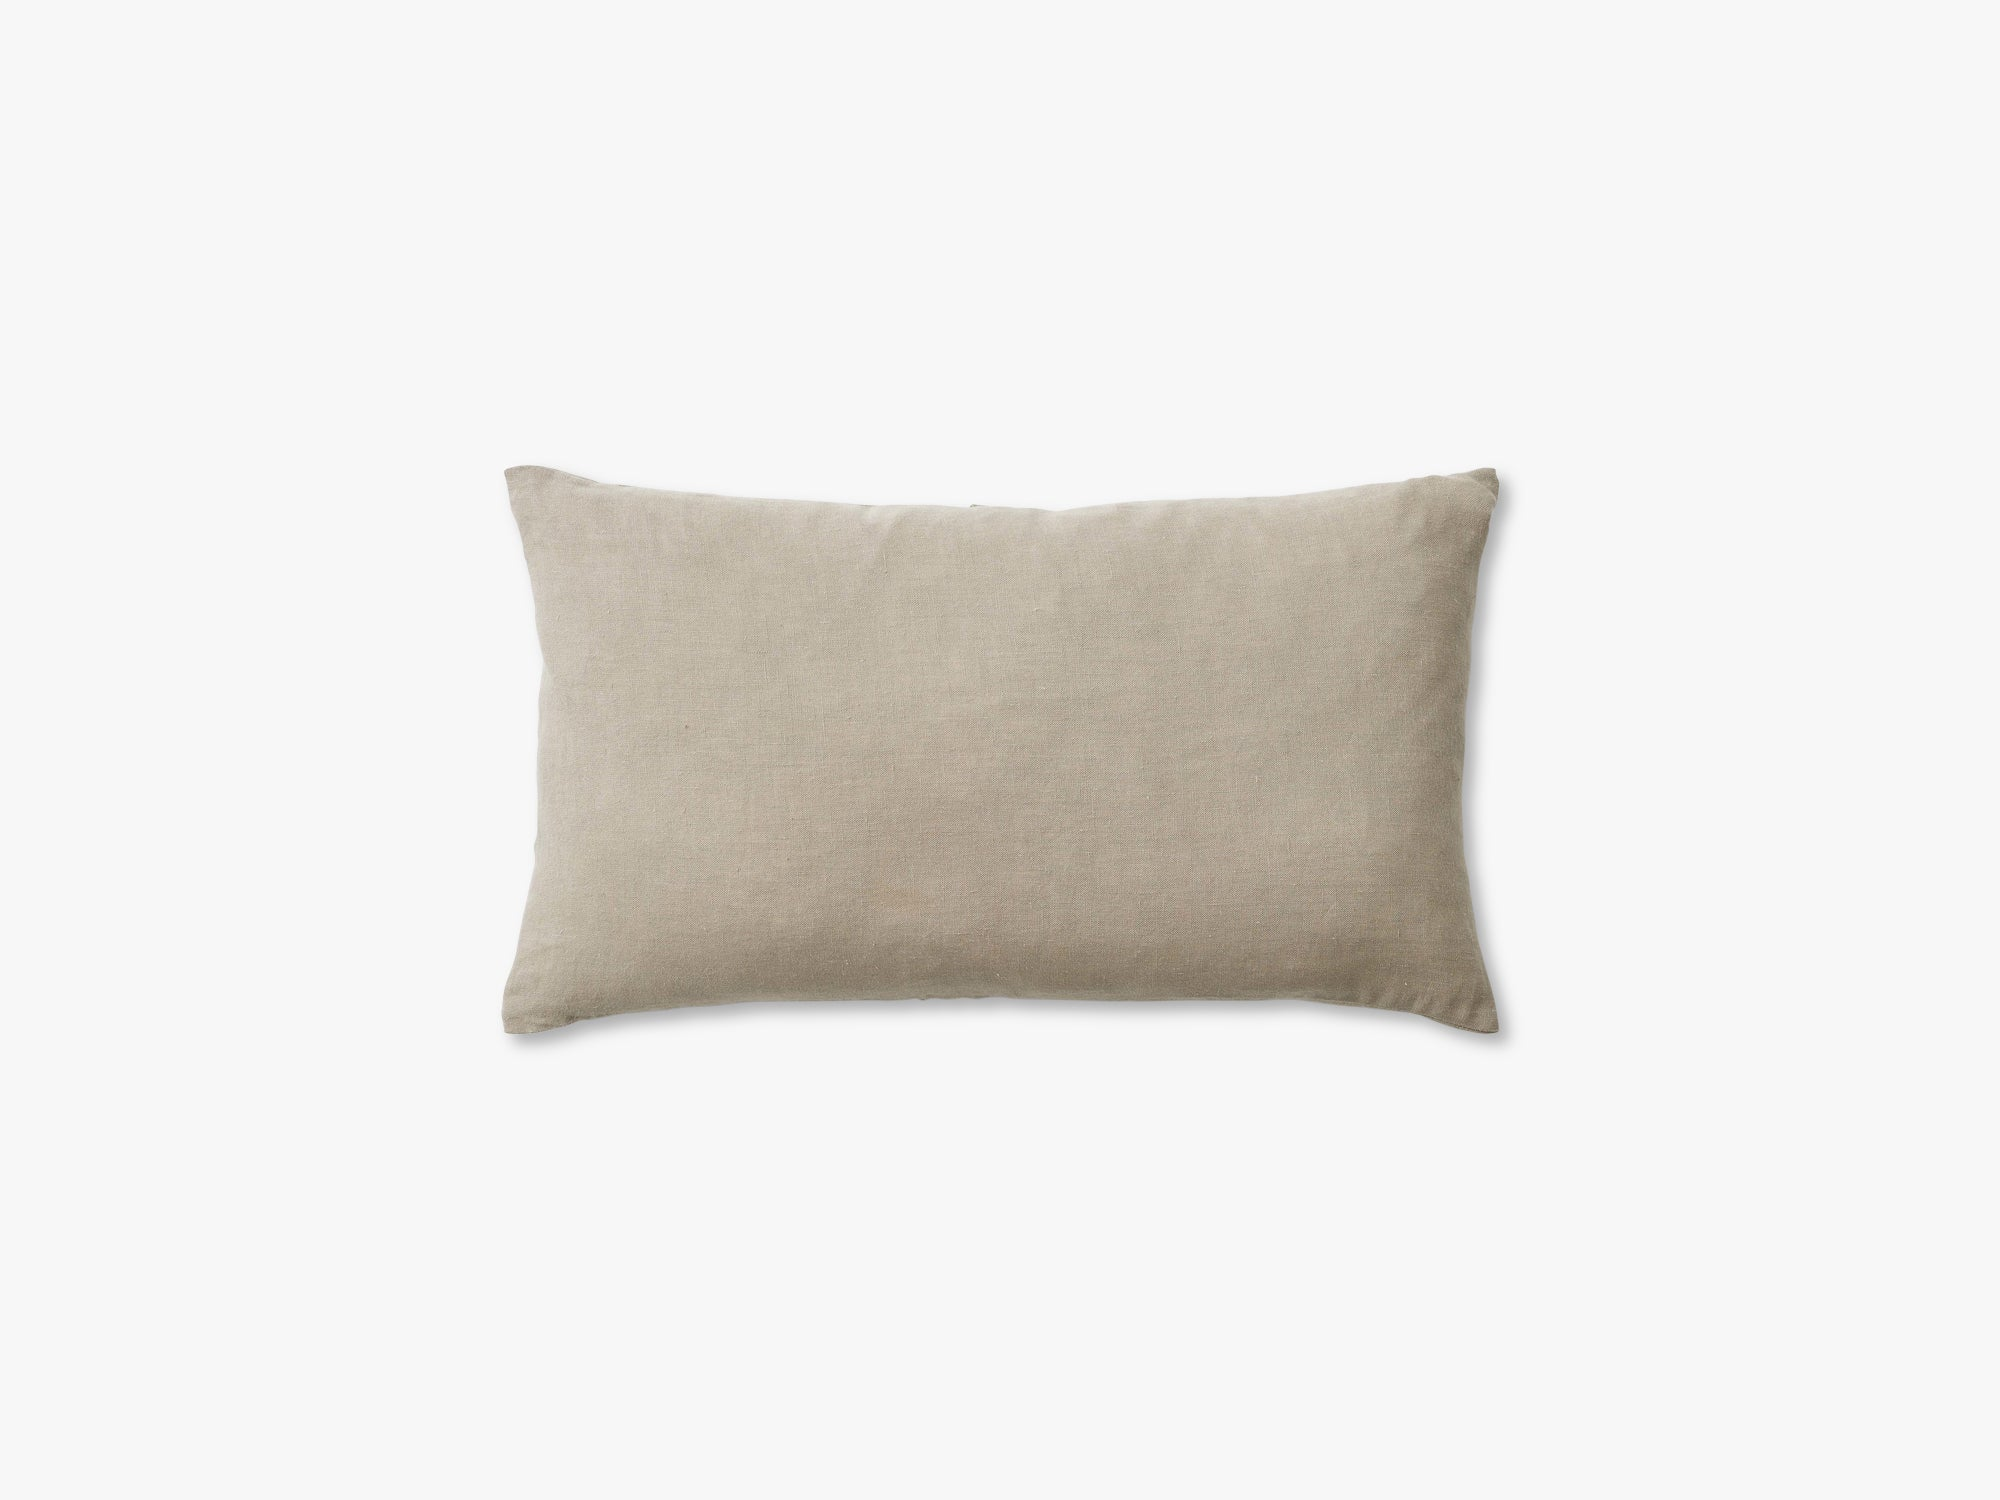 Collect Cushion SC27 - 30x50, Sand/Linen fra &tradition